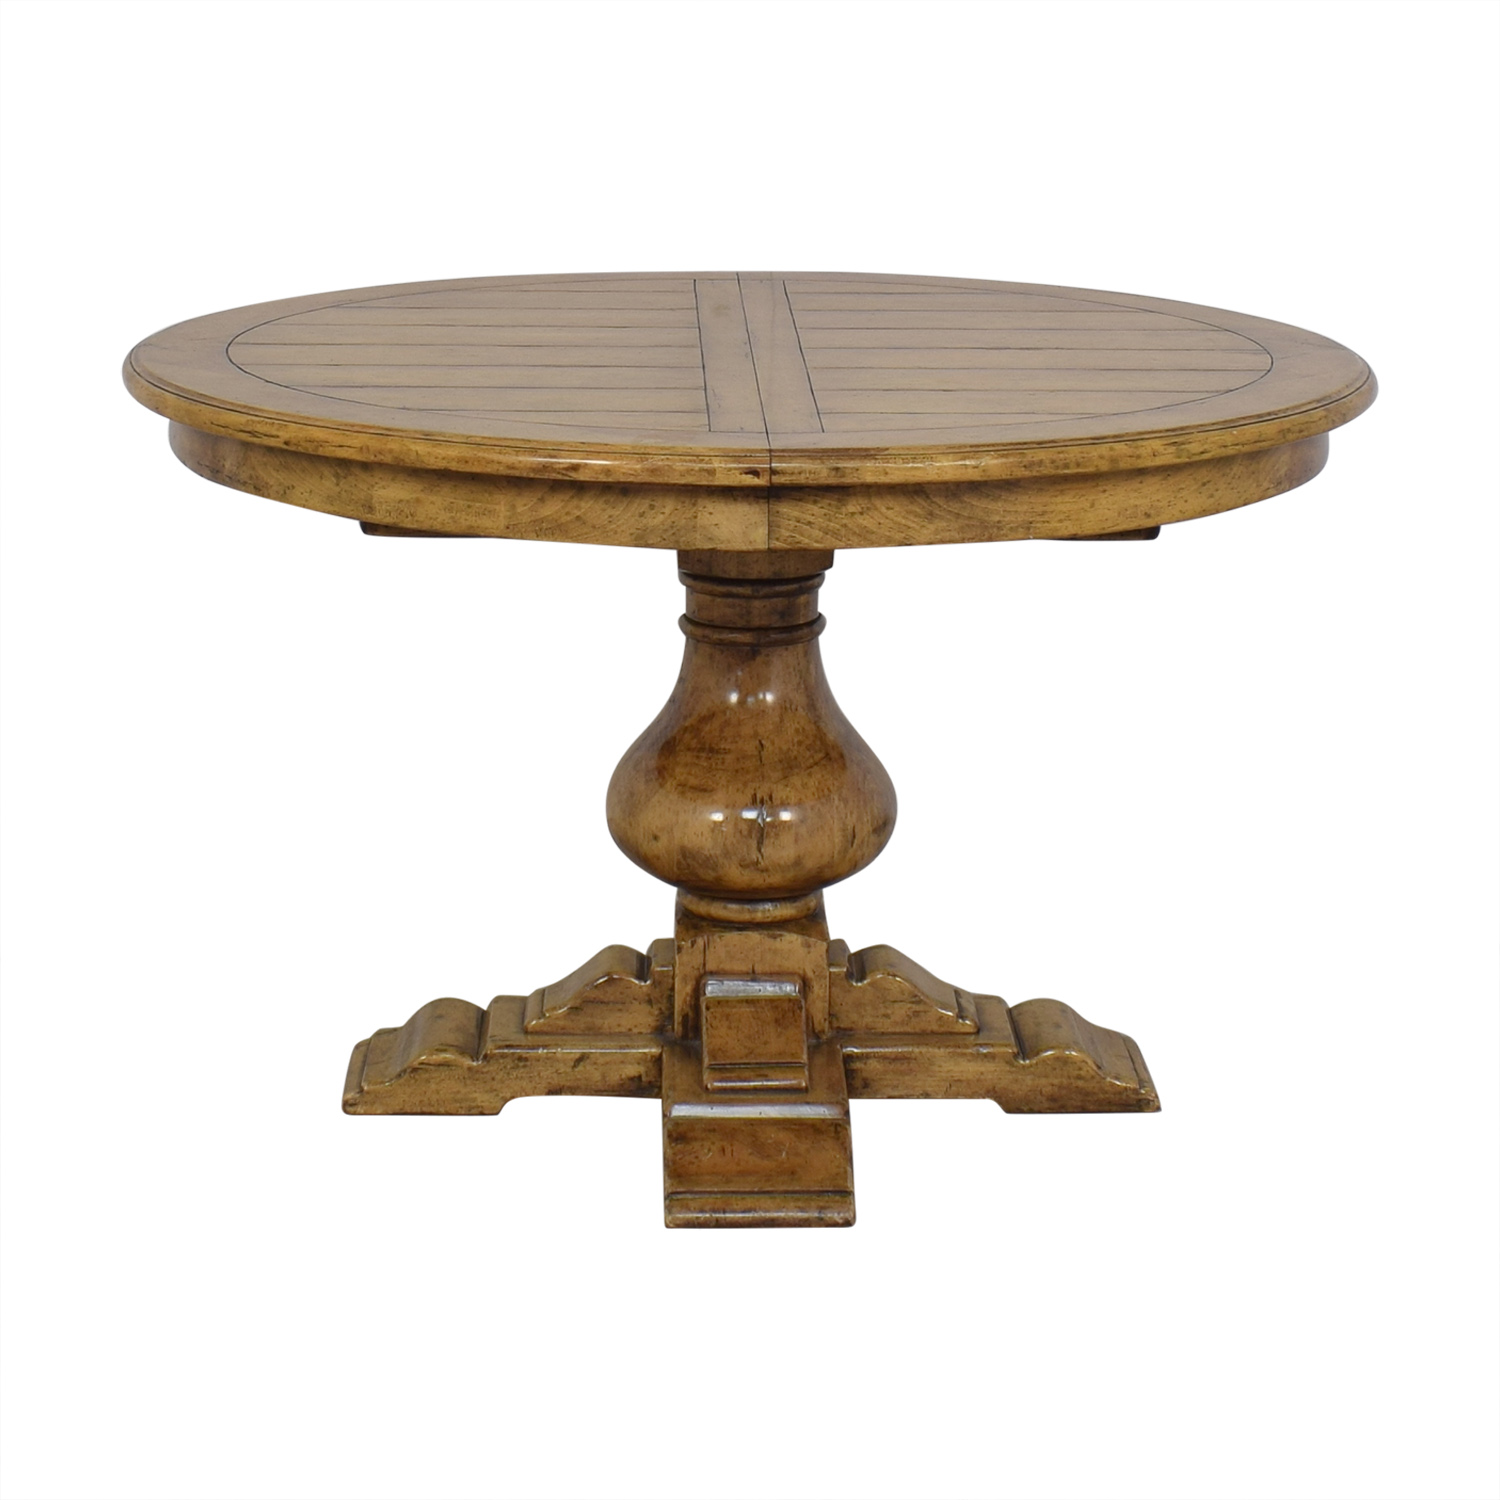 Bausman Round Table / Tables